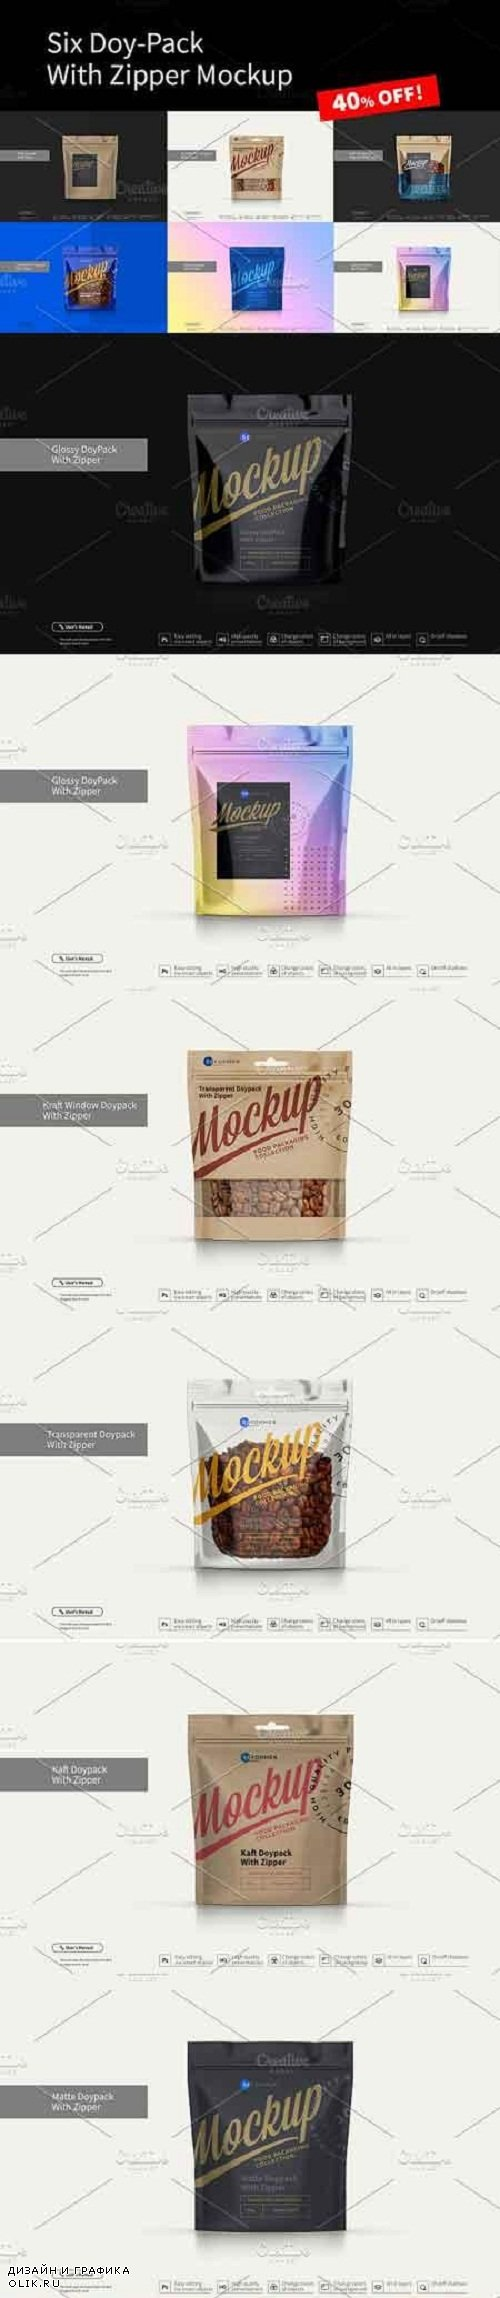 Six Doy-Pack Mockup 3284888